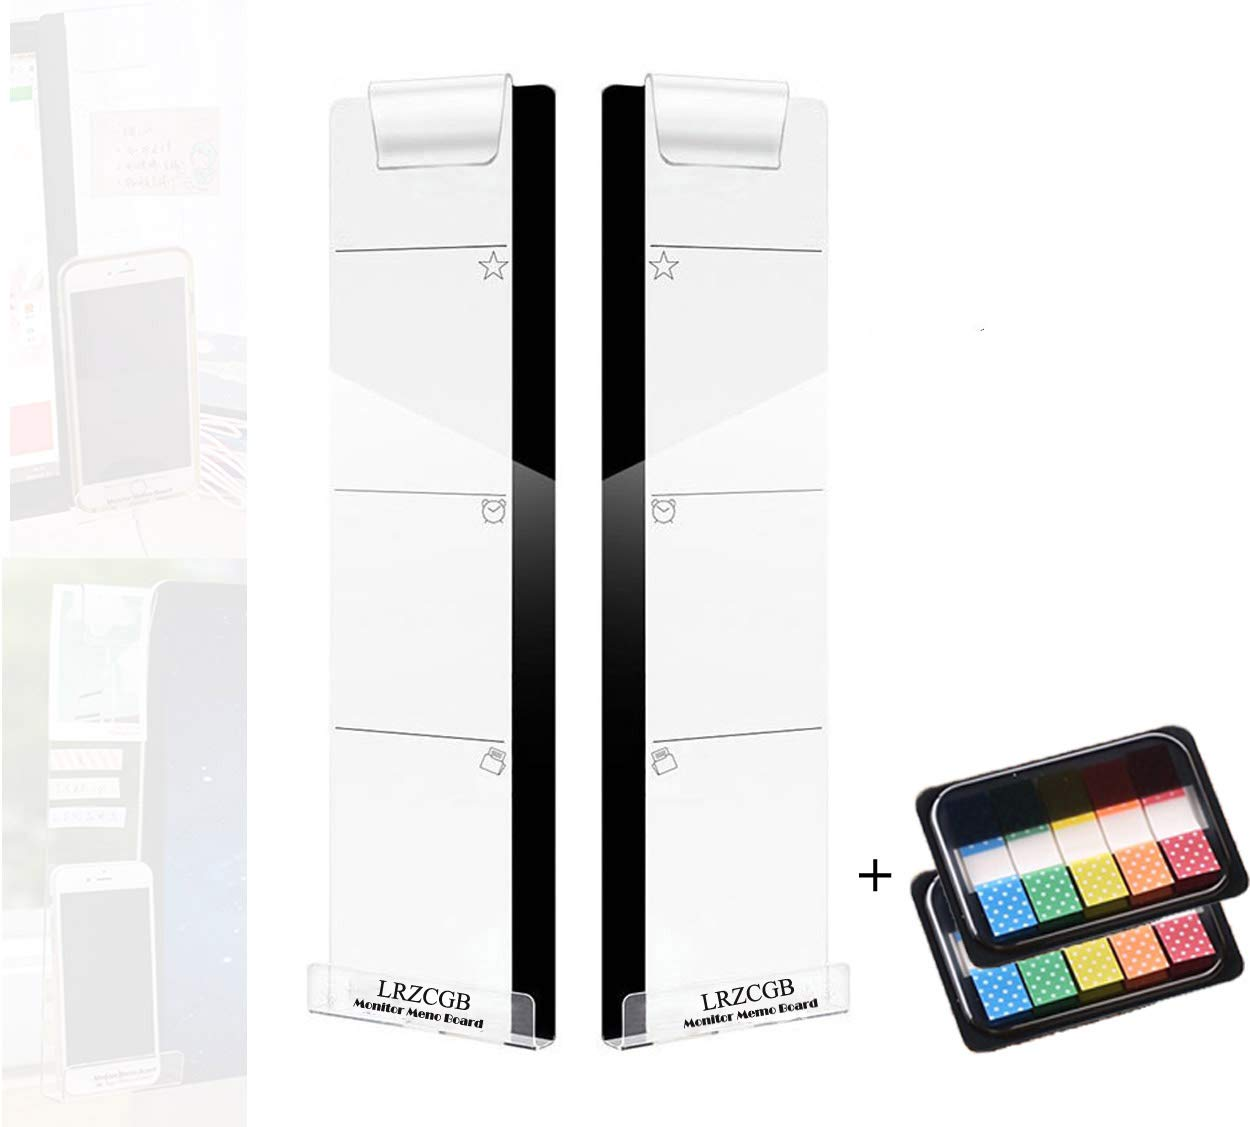 Colored Index Tabs Monitor Memo Board,3 Pcs Acrylic Message Memo Boards Note Pad Phone Holder Left /& Right /&Bottom Computer Monitors Screen Side Panel Sticky Reminder with Sticky Notes